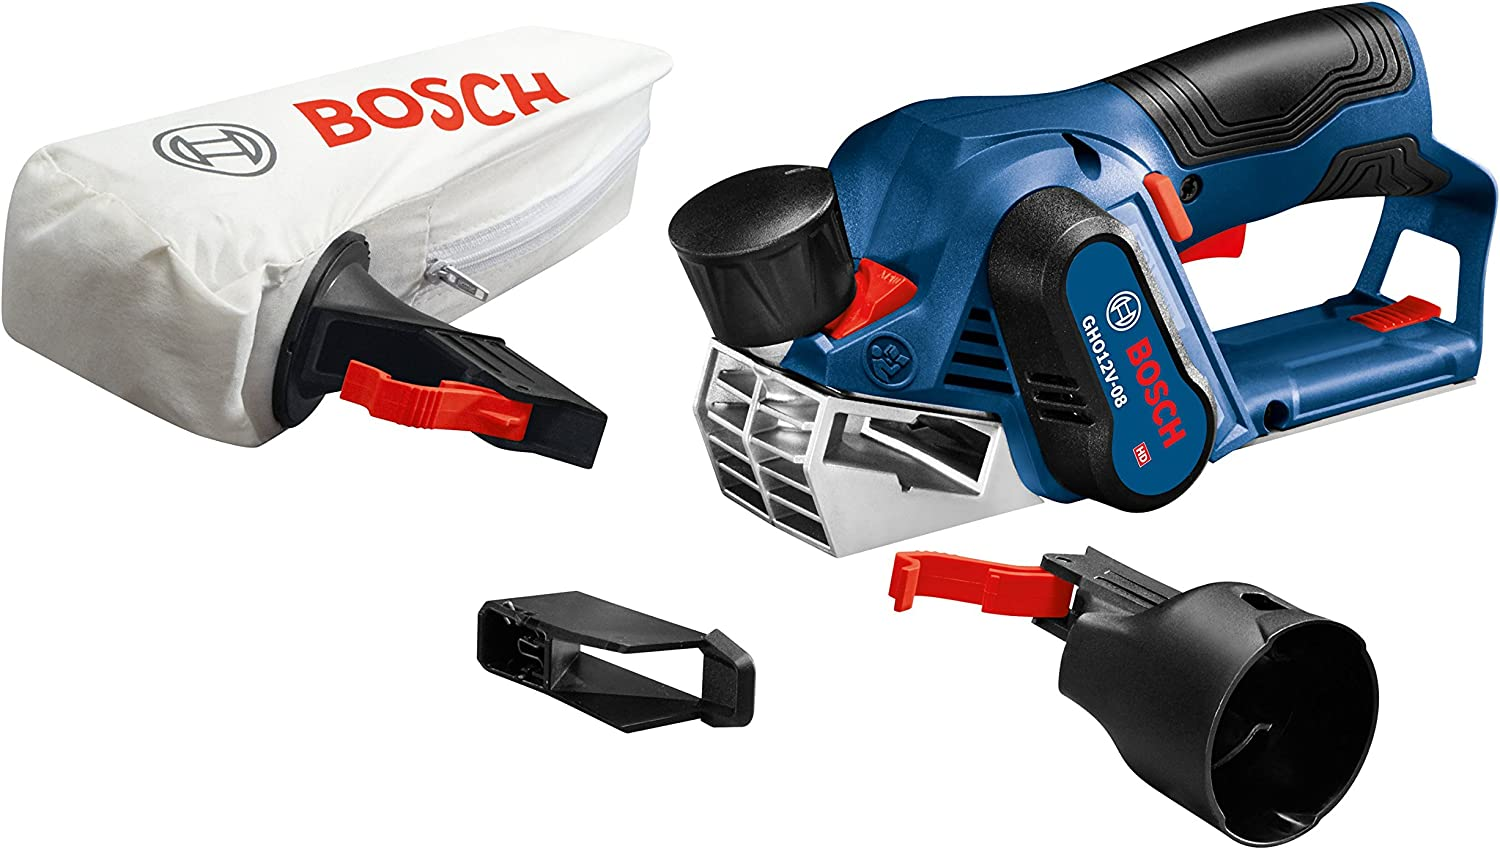 Bosch GHO12V-08N Electric Hand Planers product image 2